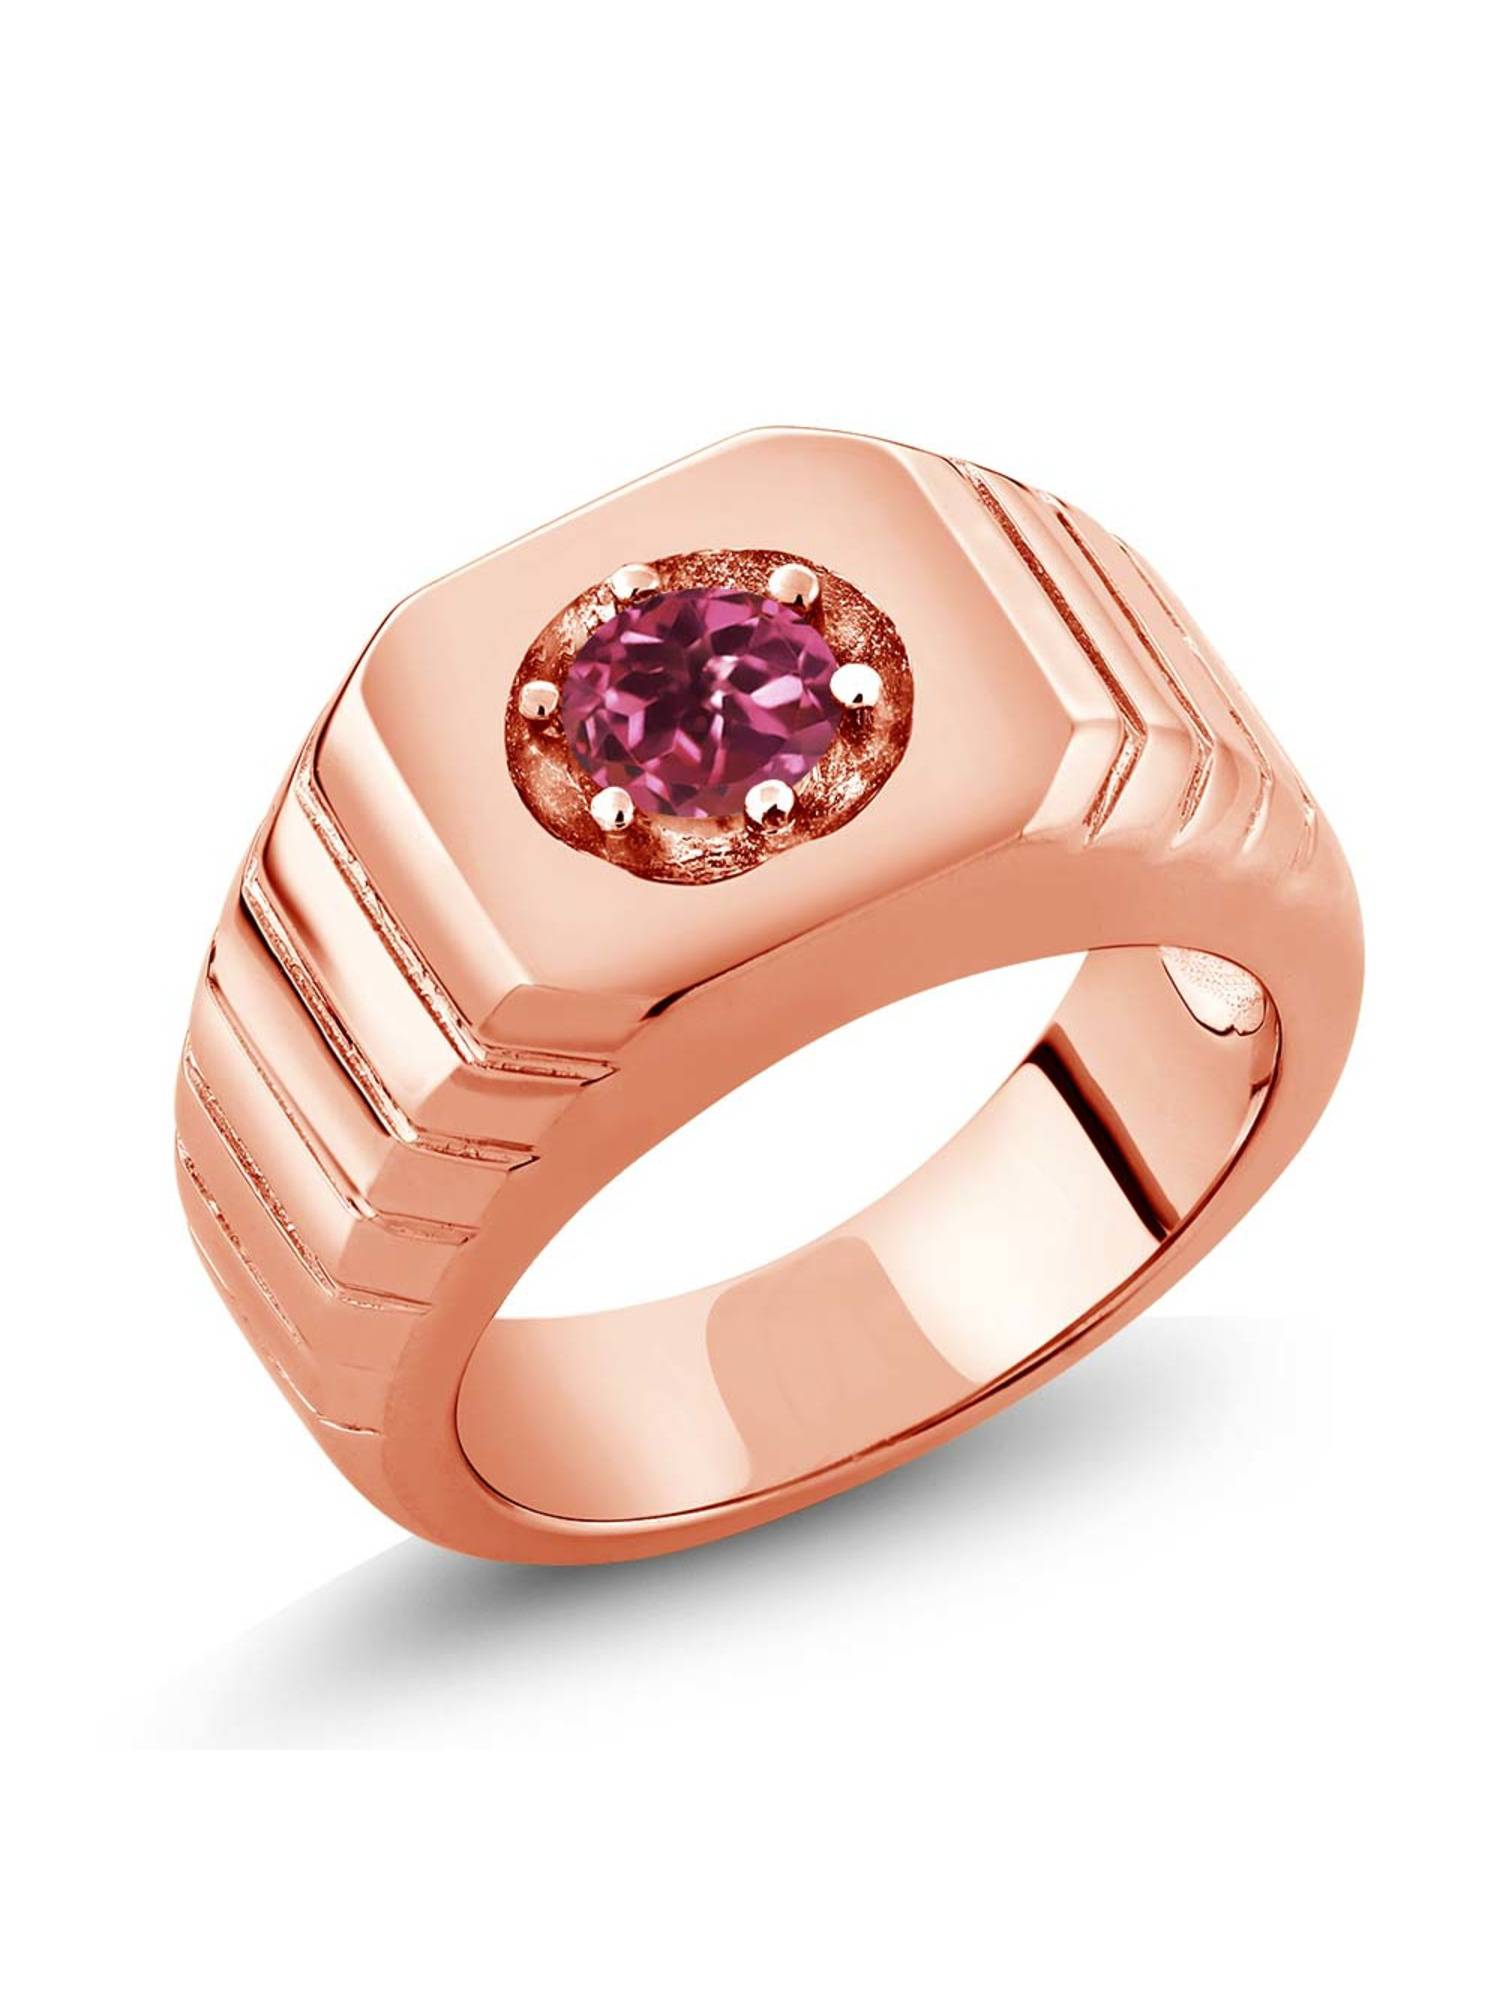 0.50 Ct Pink AAA Tourmaline AAA 18K Rose Gold Plated Silver Men's Solitaire Ring by